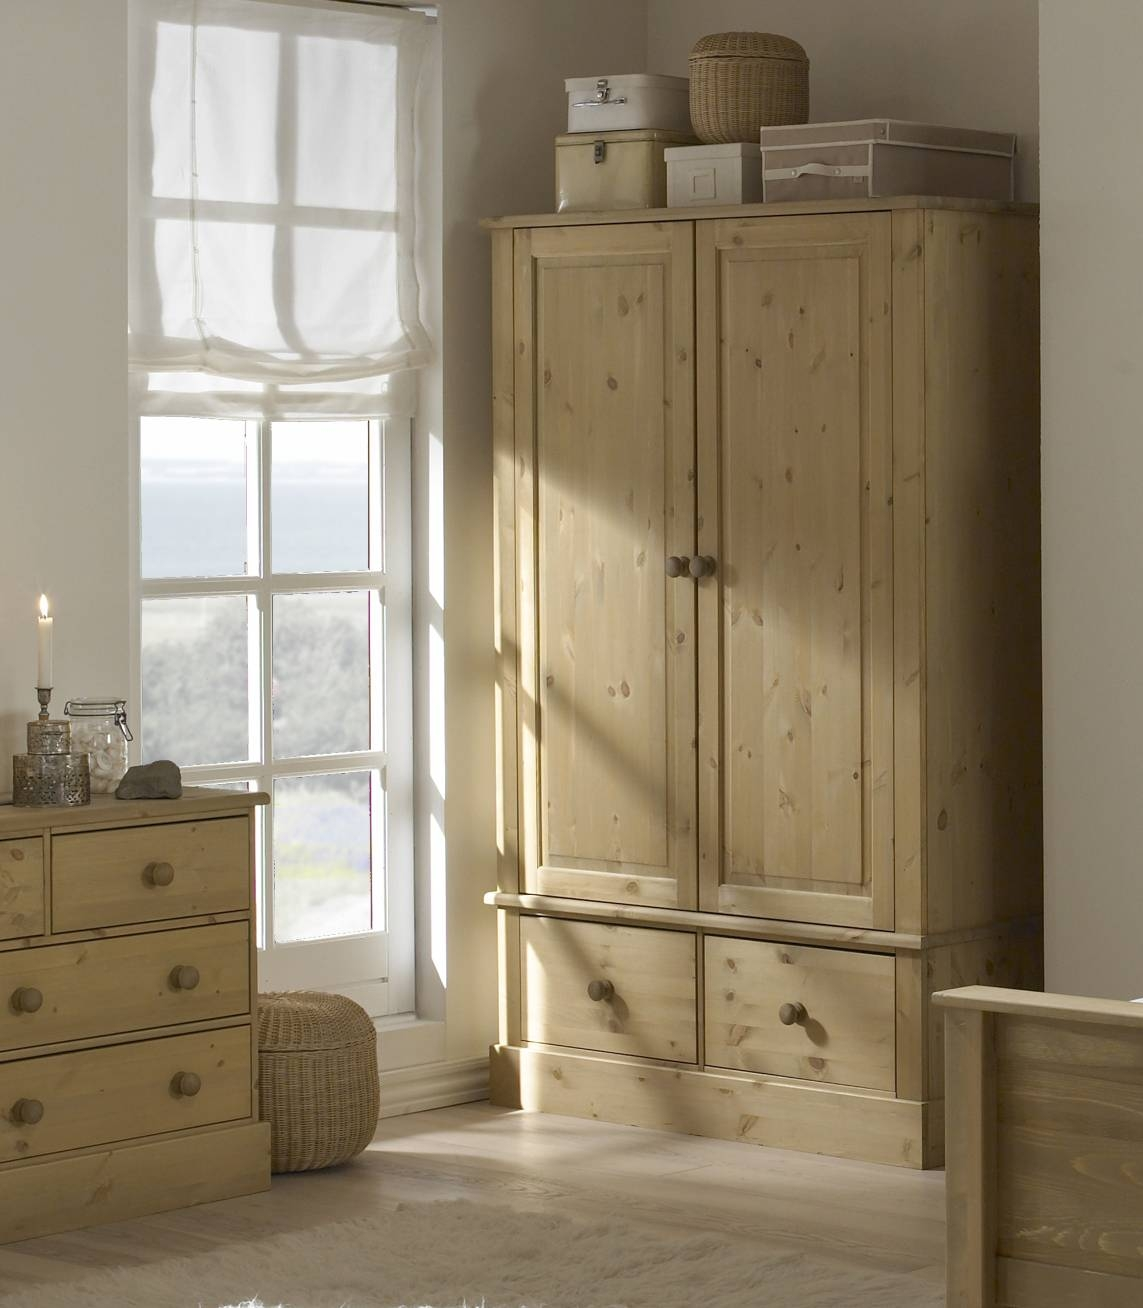 Balmoral Pine Bedroom Furniture, Chest Of Drawers, Wardrobe intended for Double Rail Wardrobe With Drawers (Image 5 of 30)